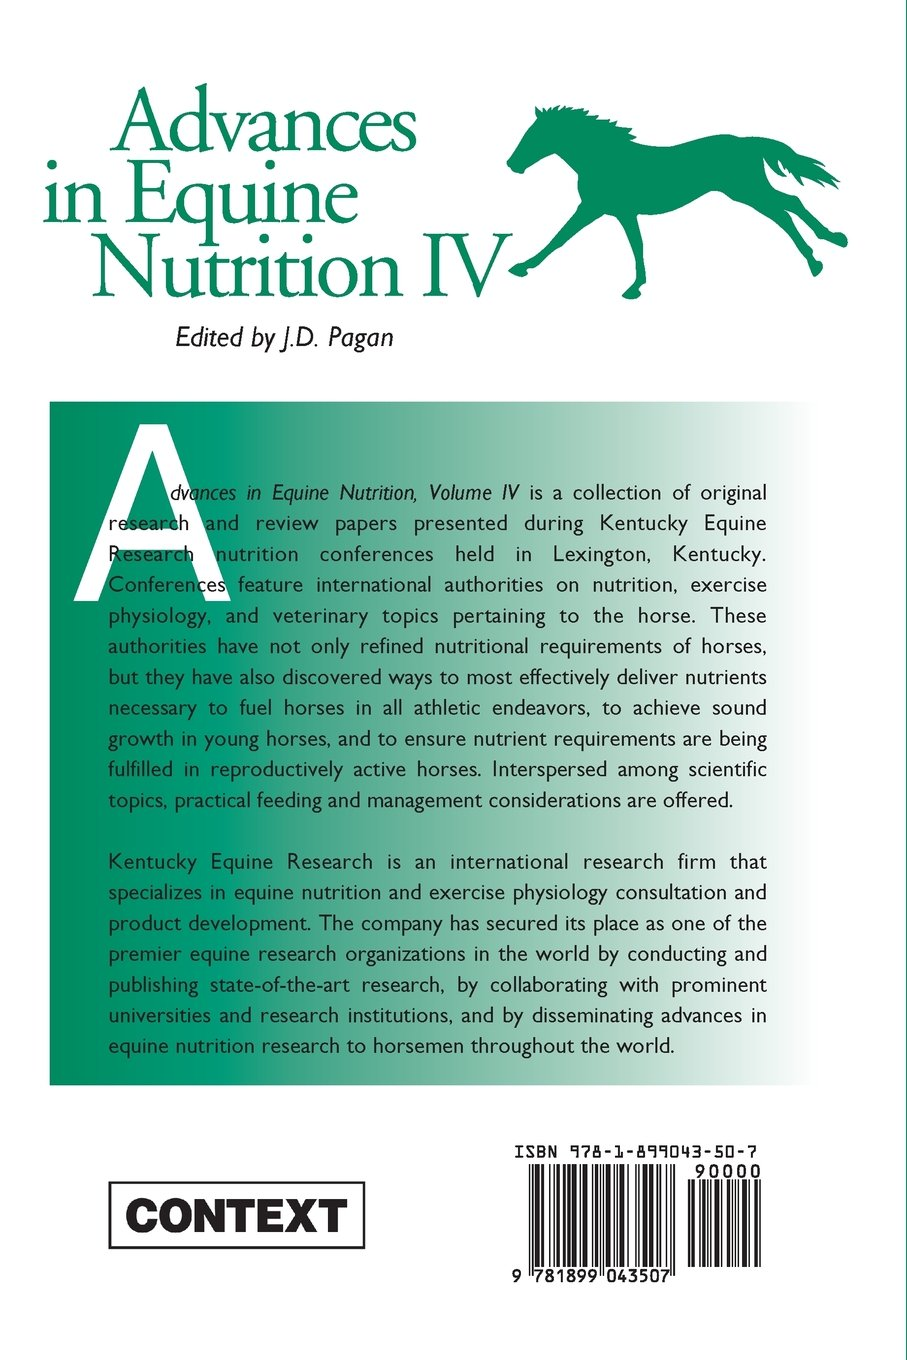 Advances in Equine Nutrition IV: Amazon.co.uk: J D Pagan: 9781899043507:  Books